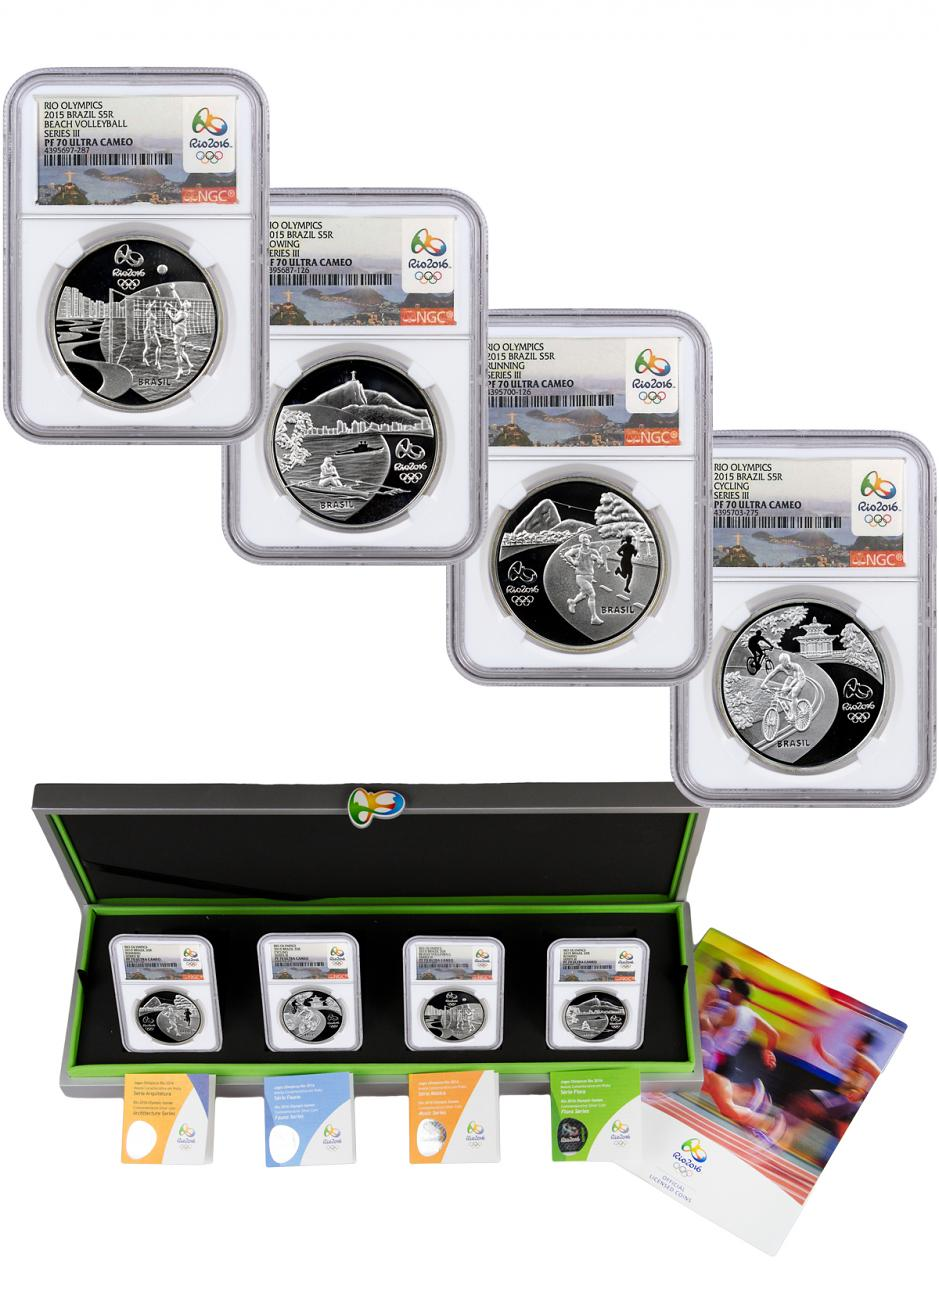 2014 Brazil 5 Reais Proof Silver Rio 2016 Olympics Series 3 - Set of 4 Coins - NGC PF70 UC (Rio 2016 Label)